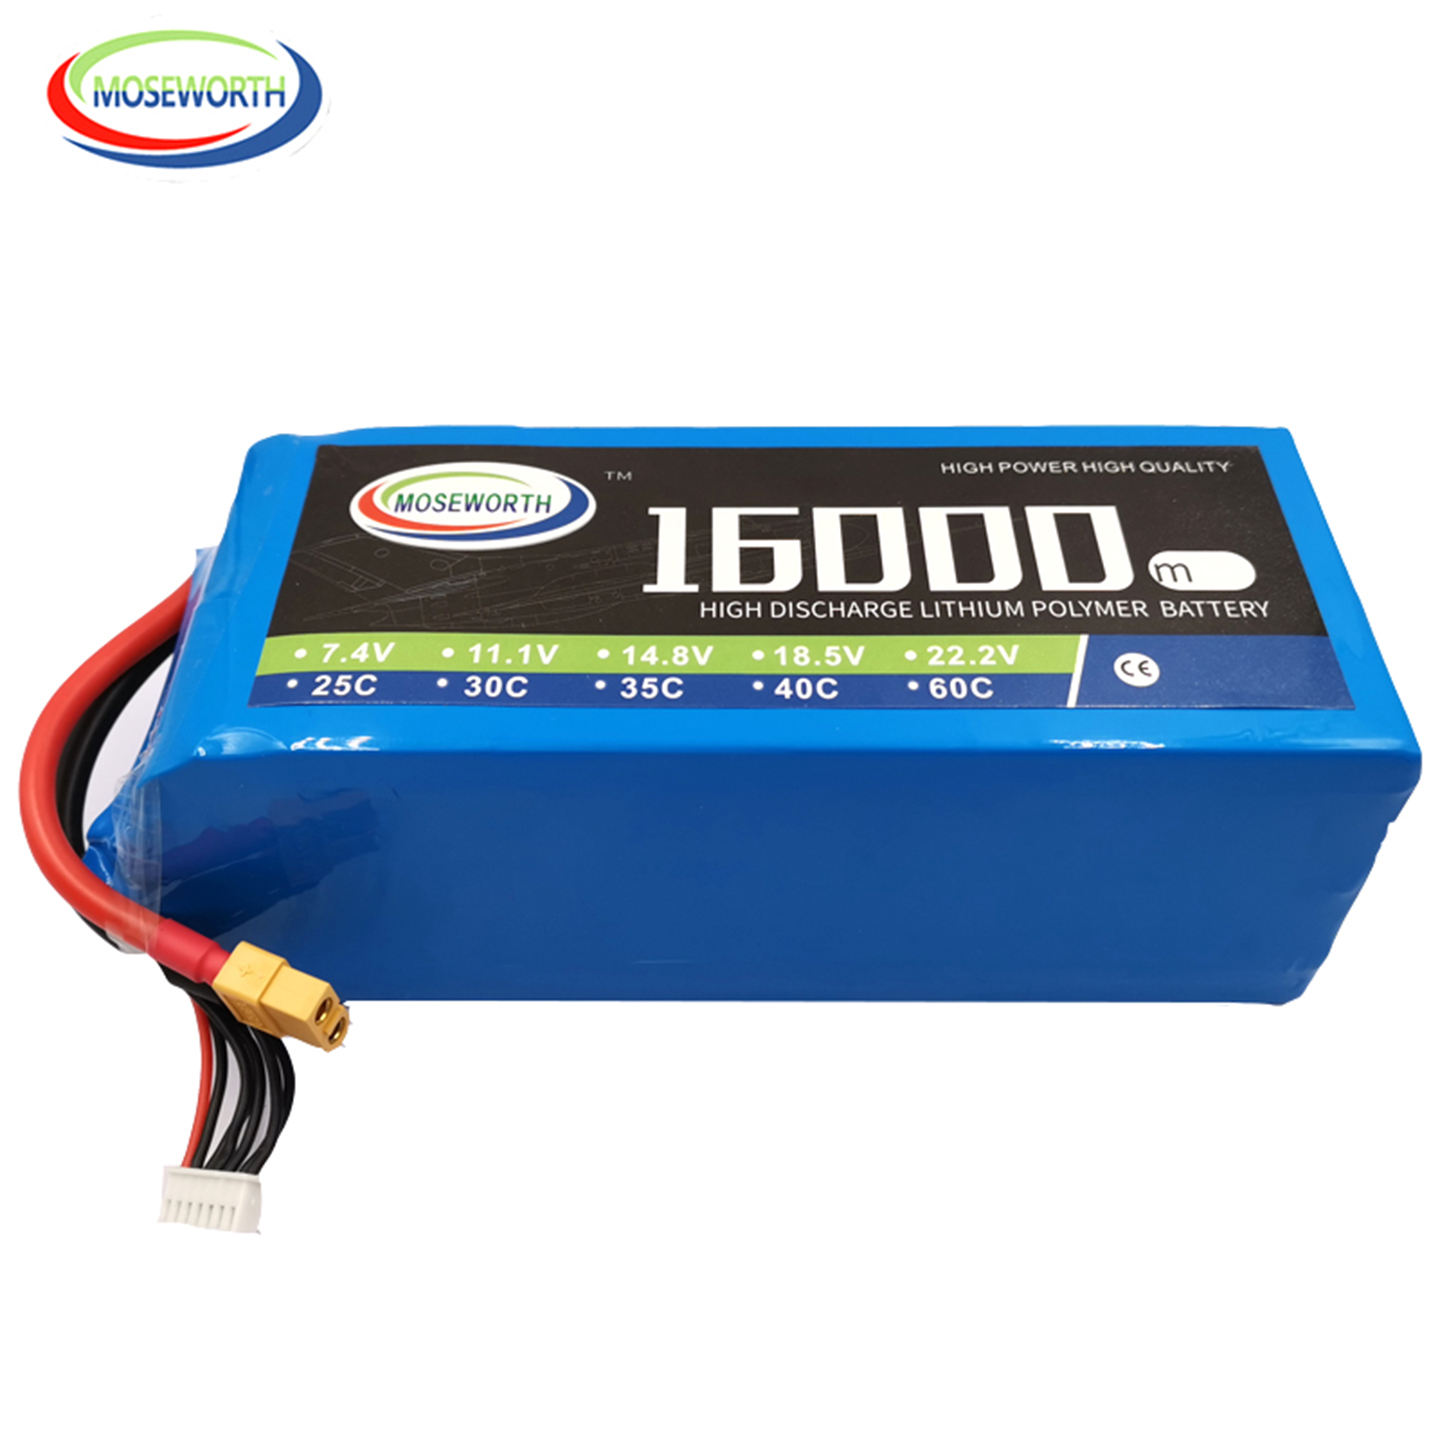 MOSEWORTH diamond 5S 16000mAh 18.5V 35C 40C Lipo Battery for Multicopter, Helicopter and UAV